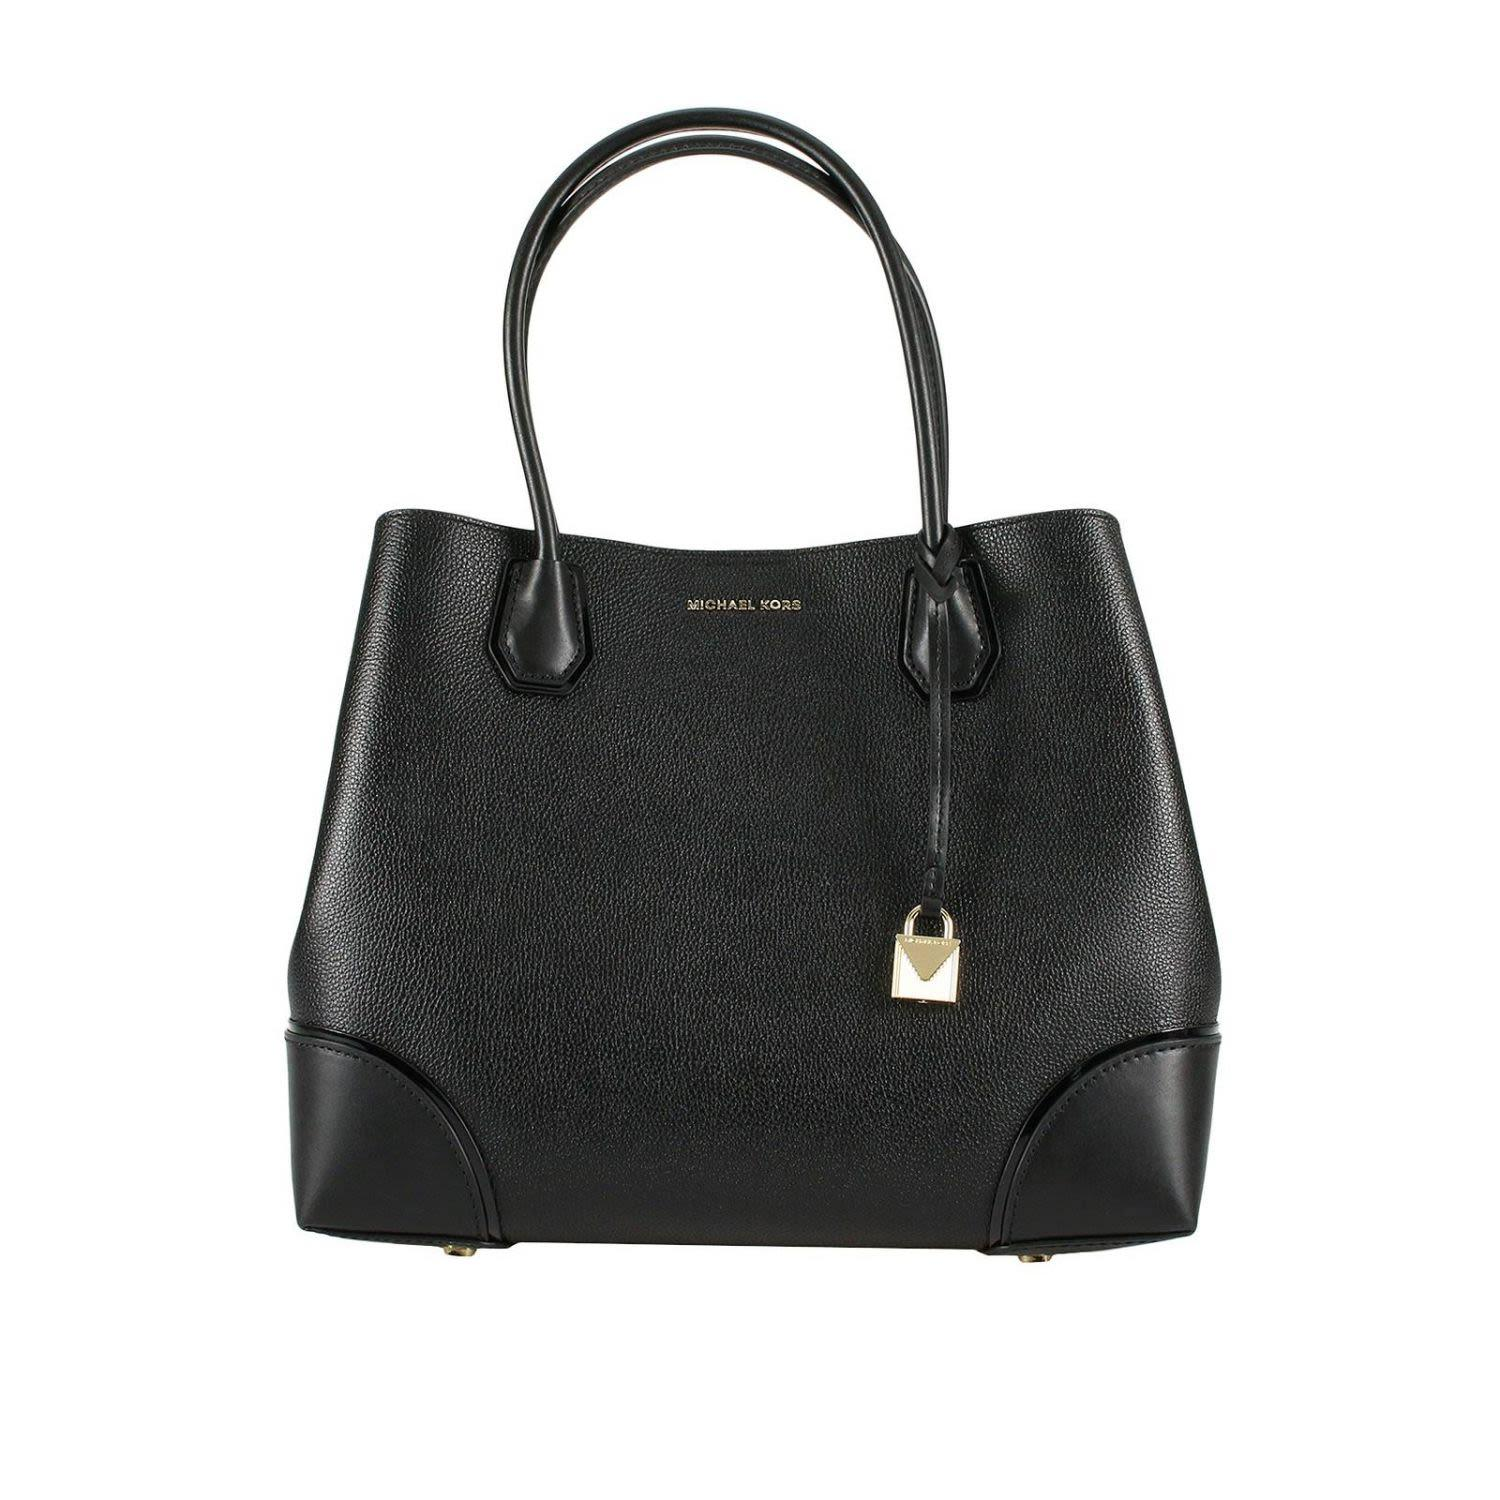 e8de8a823fc4 Michael Michael Kors Medium Mercer Gallery Leather Satchel - Black ...